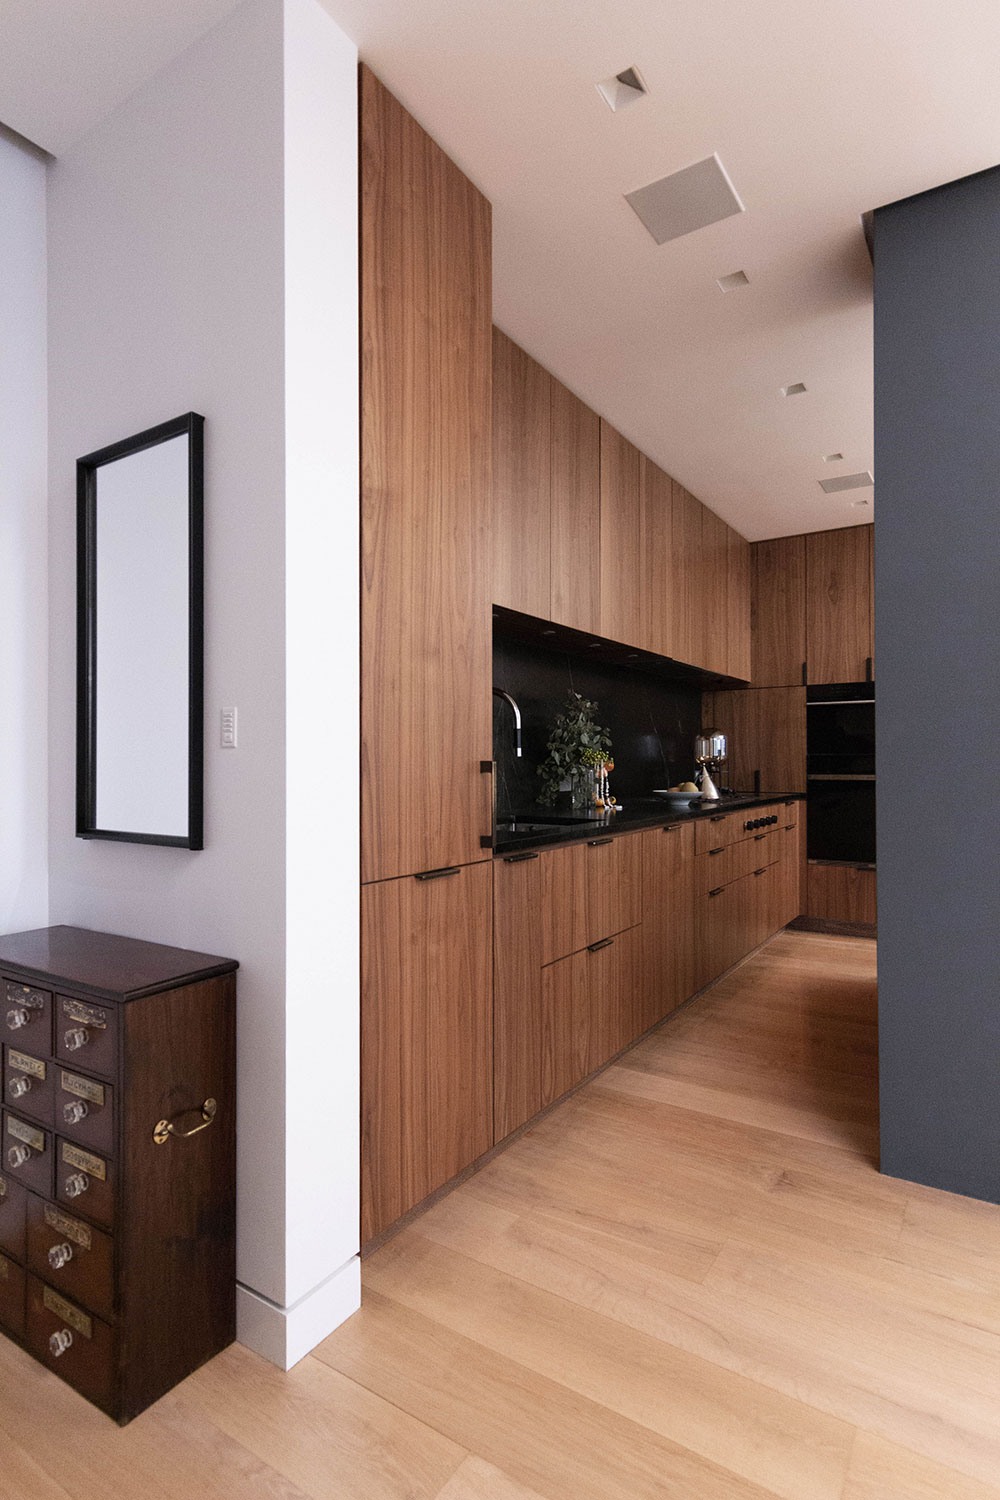 Kitchen entrance of the Loft renovation project in Chelsea, New York City designed by the architecture studio Danny Forster & Architecture